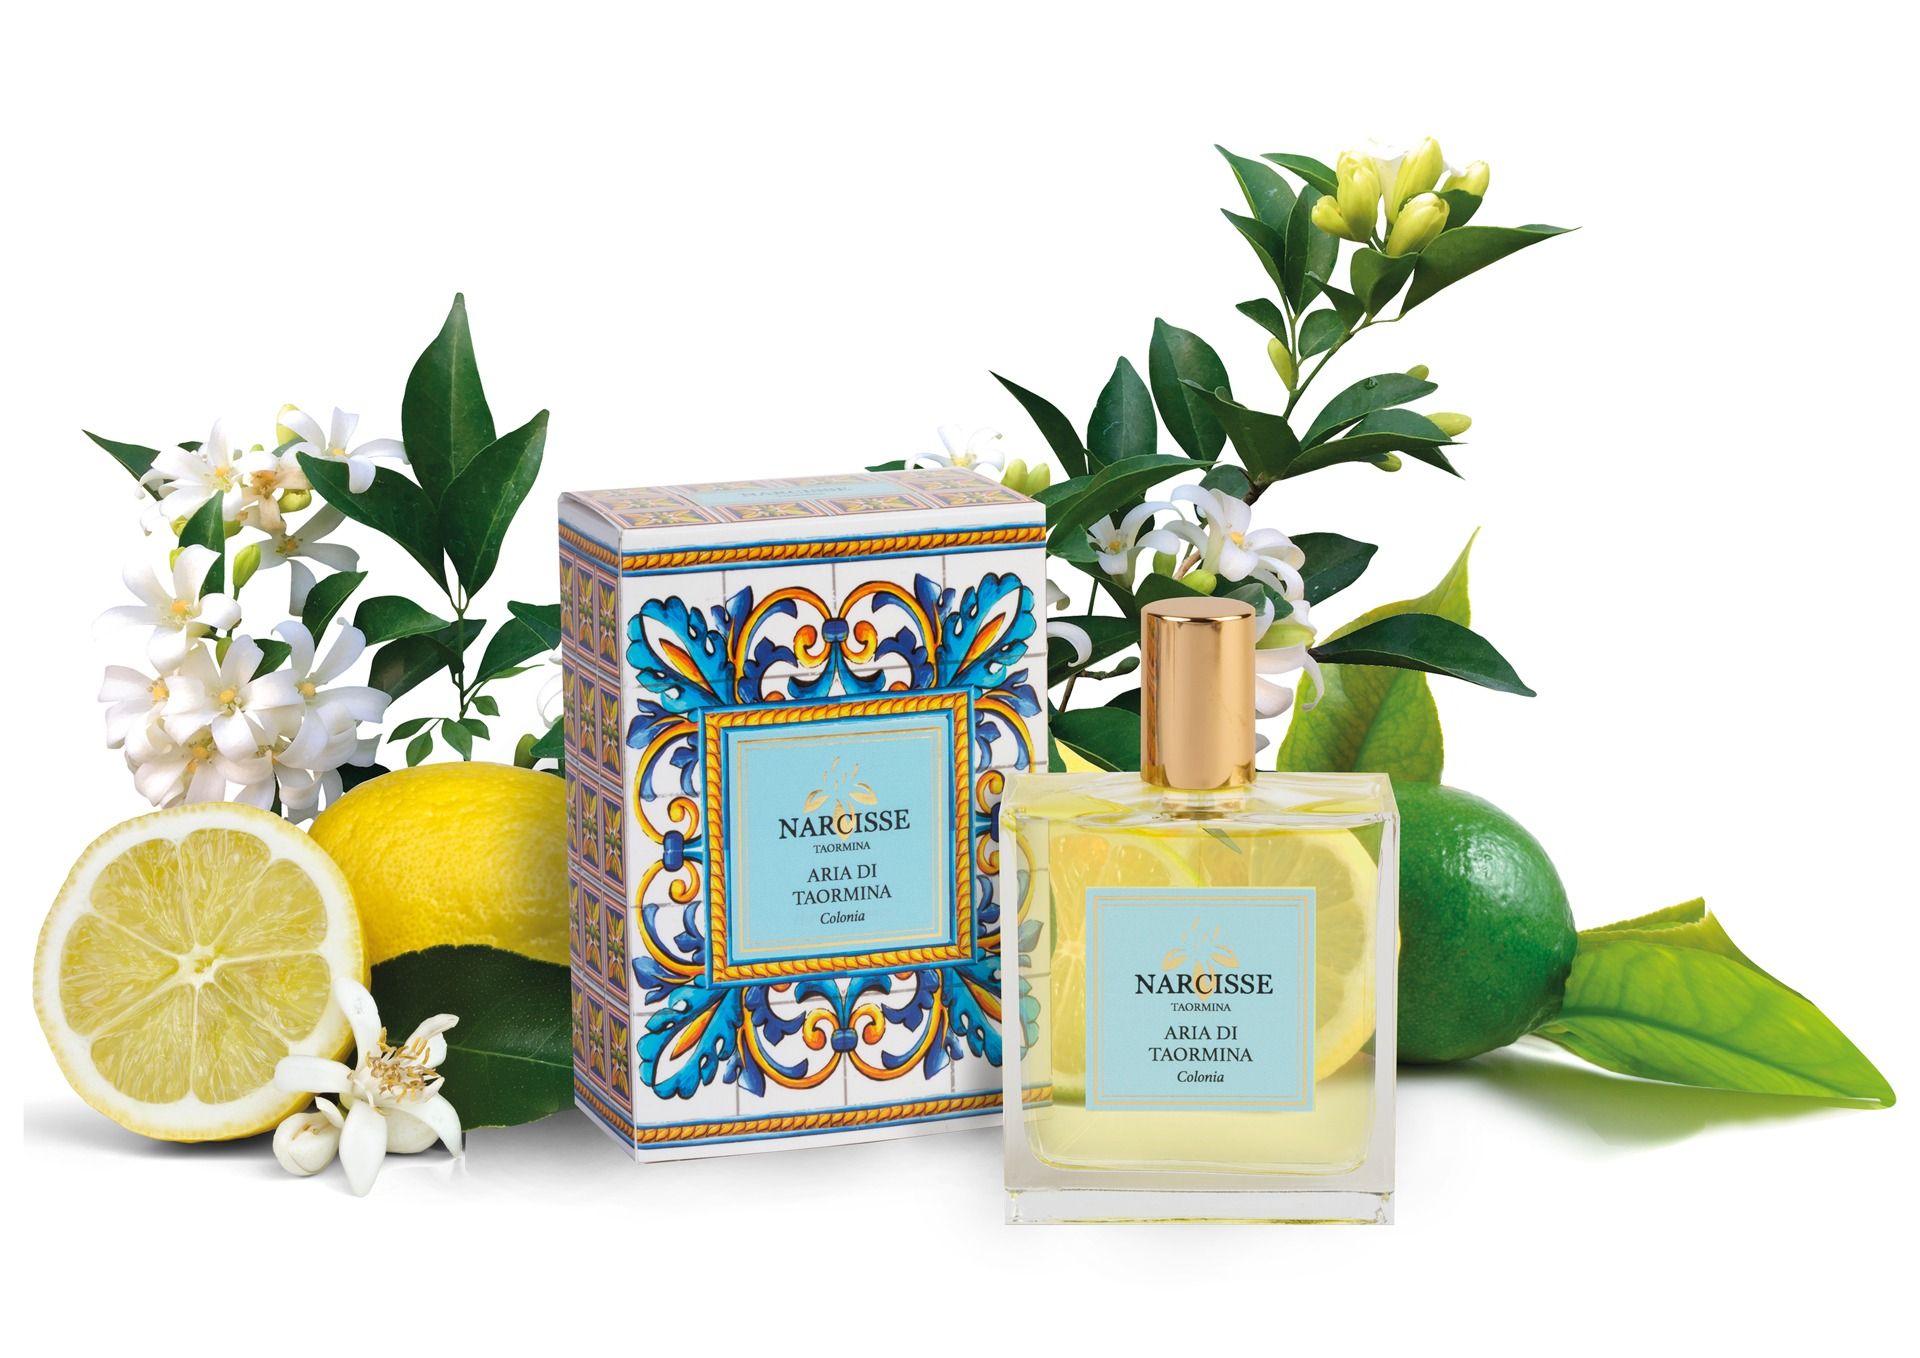 Air of Taormina, a perfume of the Narcisse collection